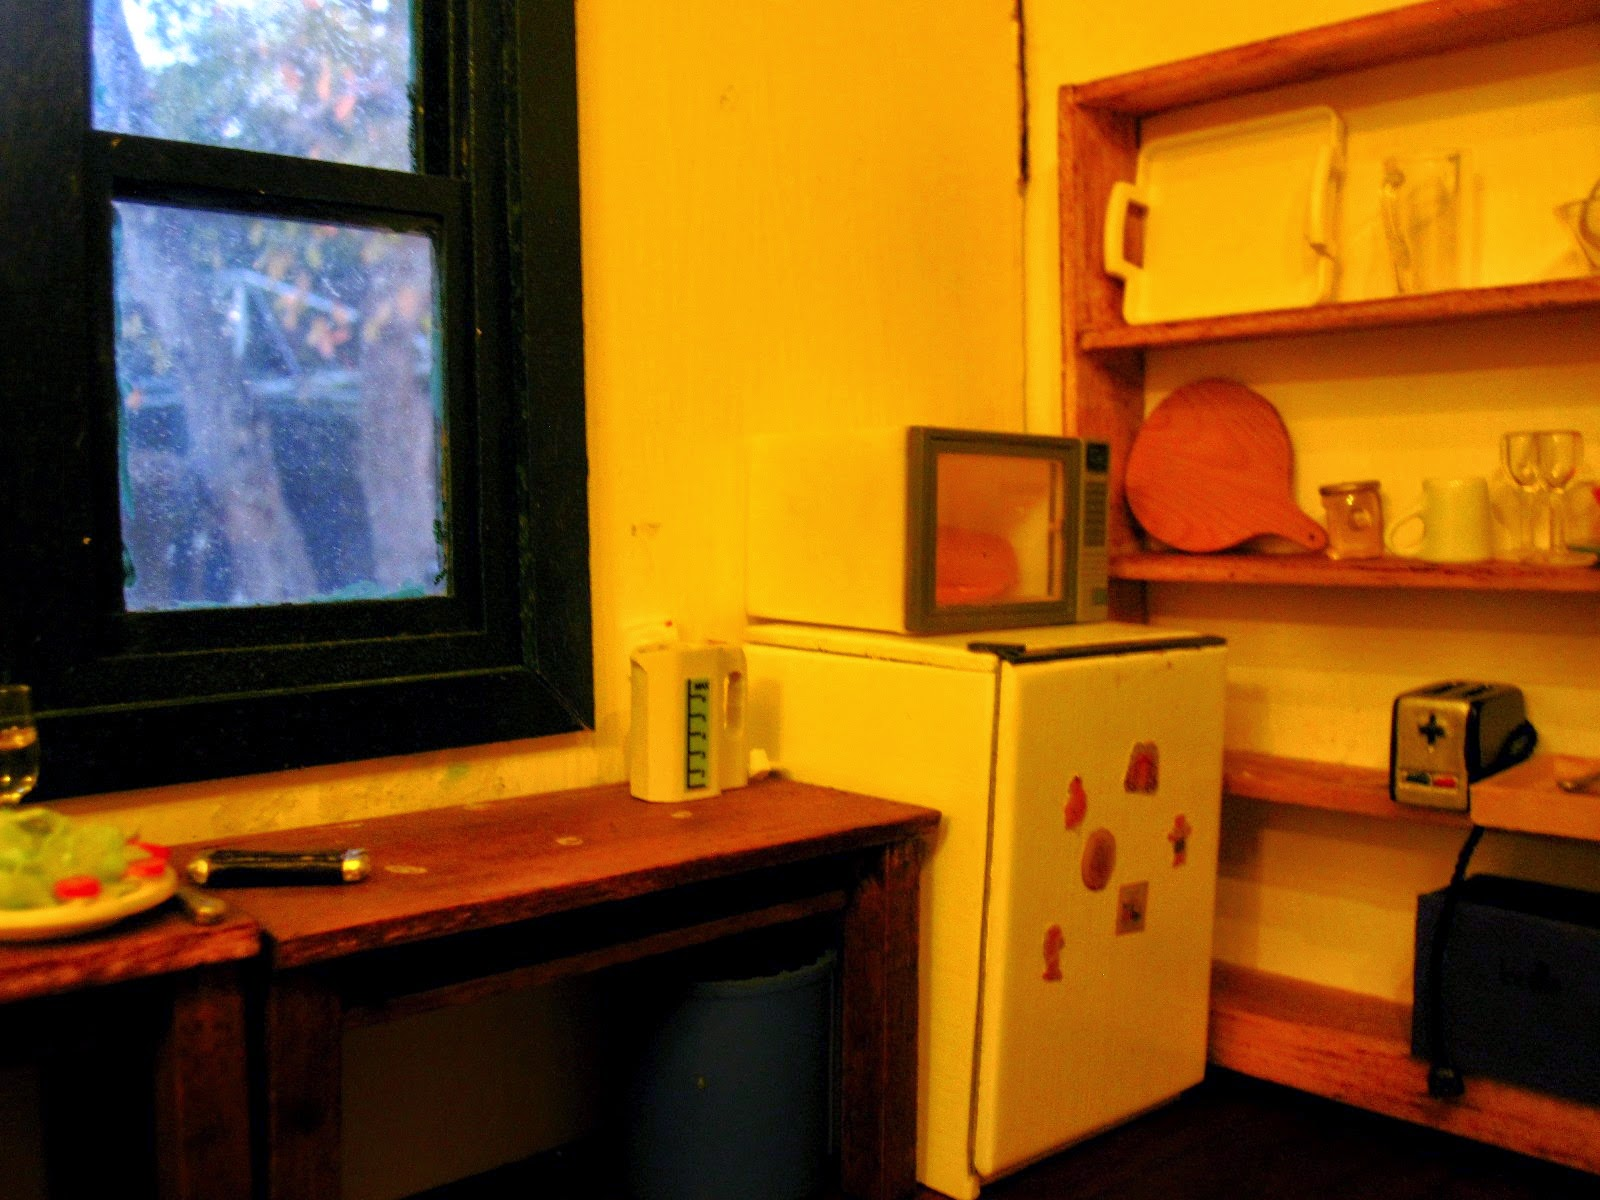 Modern miniature scene of a holiday house kitchen at night, with a bar fridge, microwave and shelving holding various items of crockery and kitchenware.